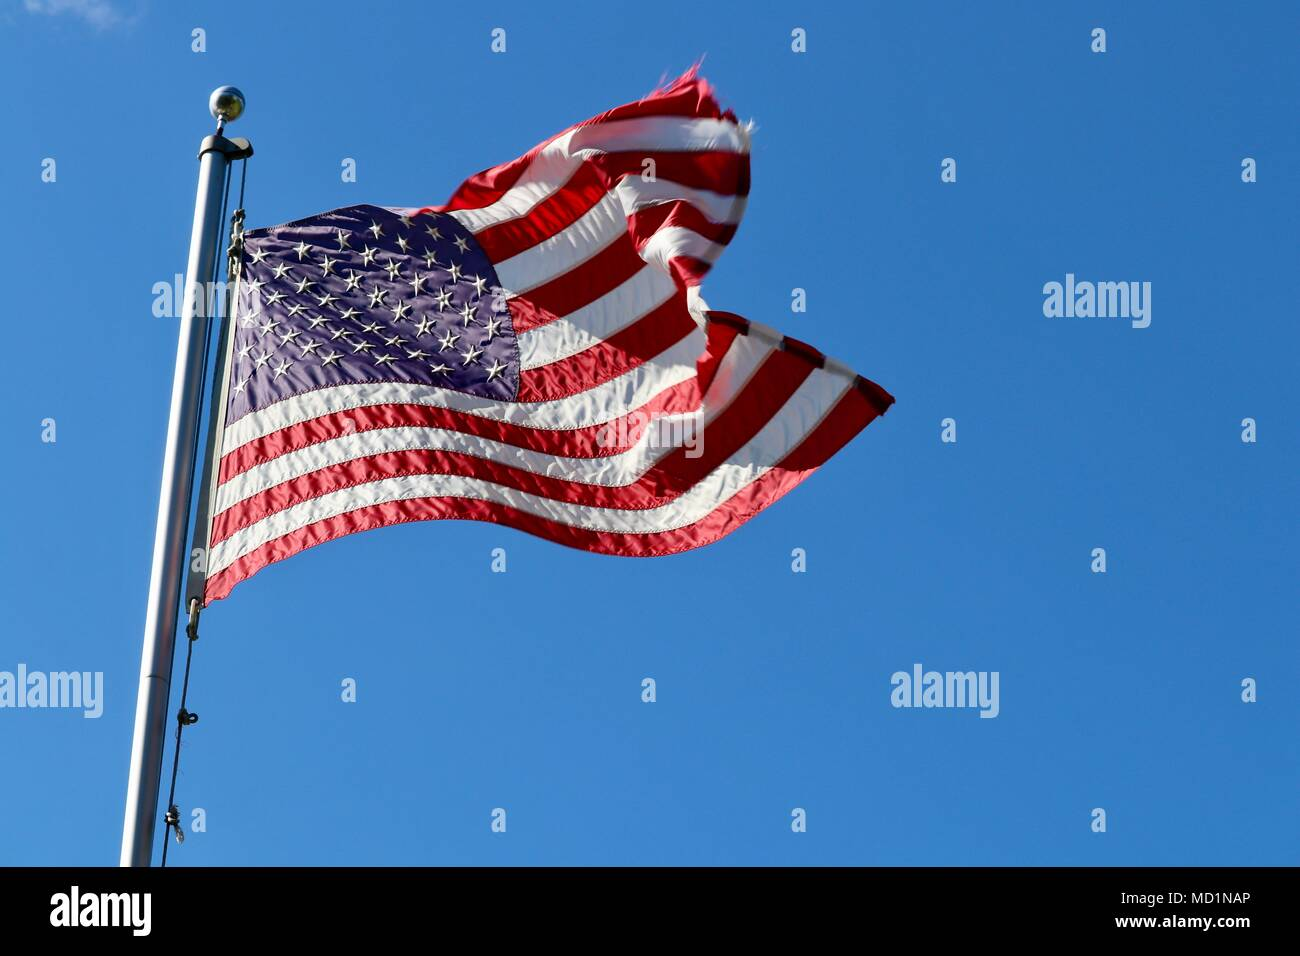 American Flag flying on flagpole at full mast on breezy sunny day isolated against vivid blue sky - Stock Image